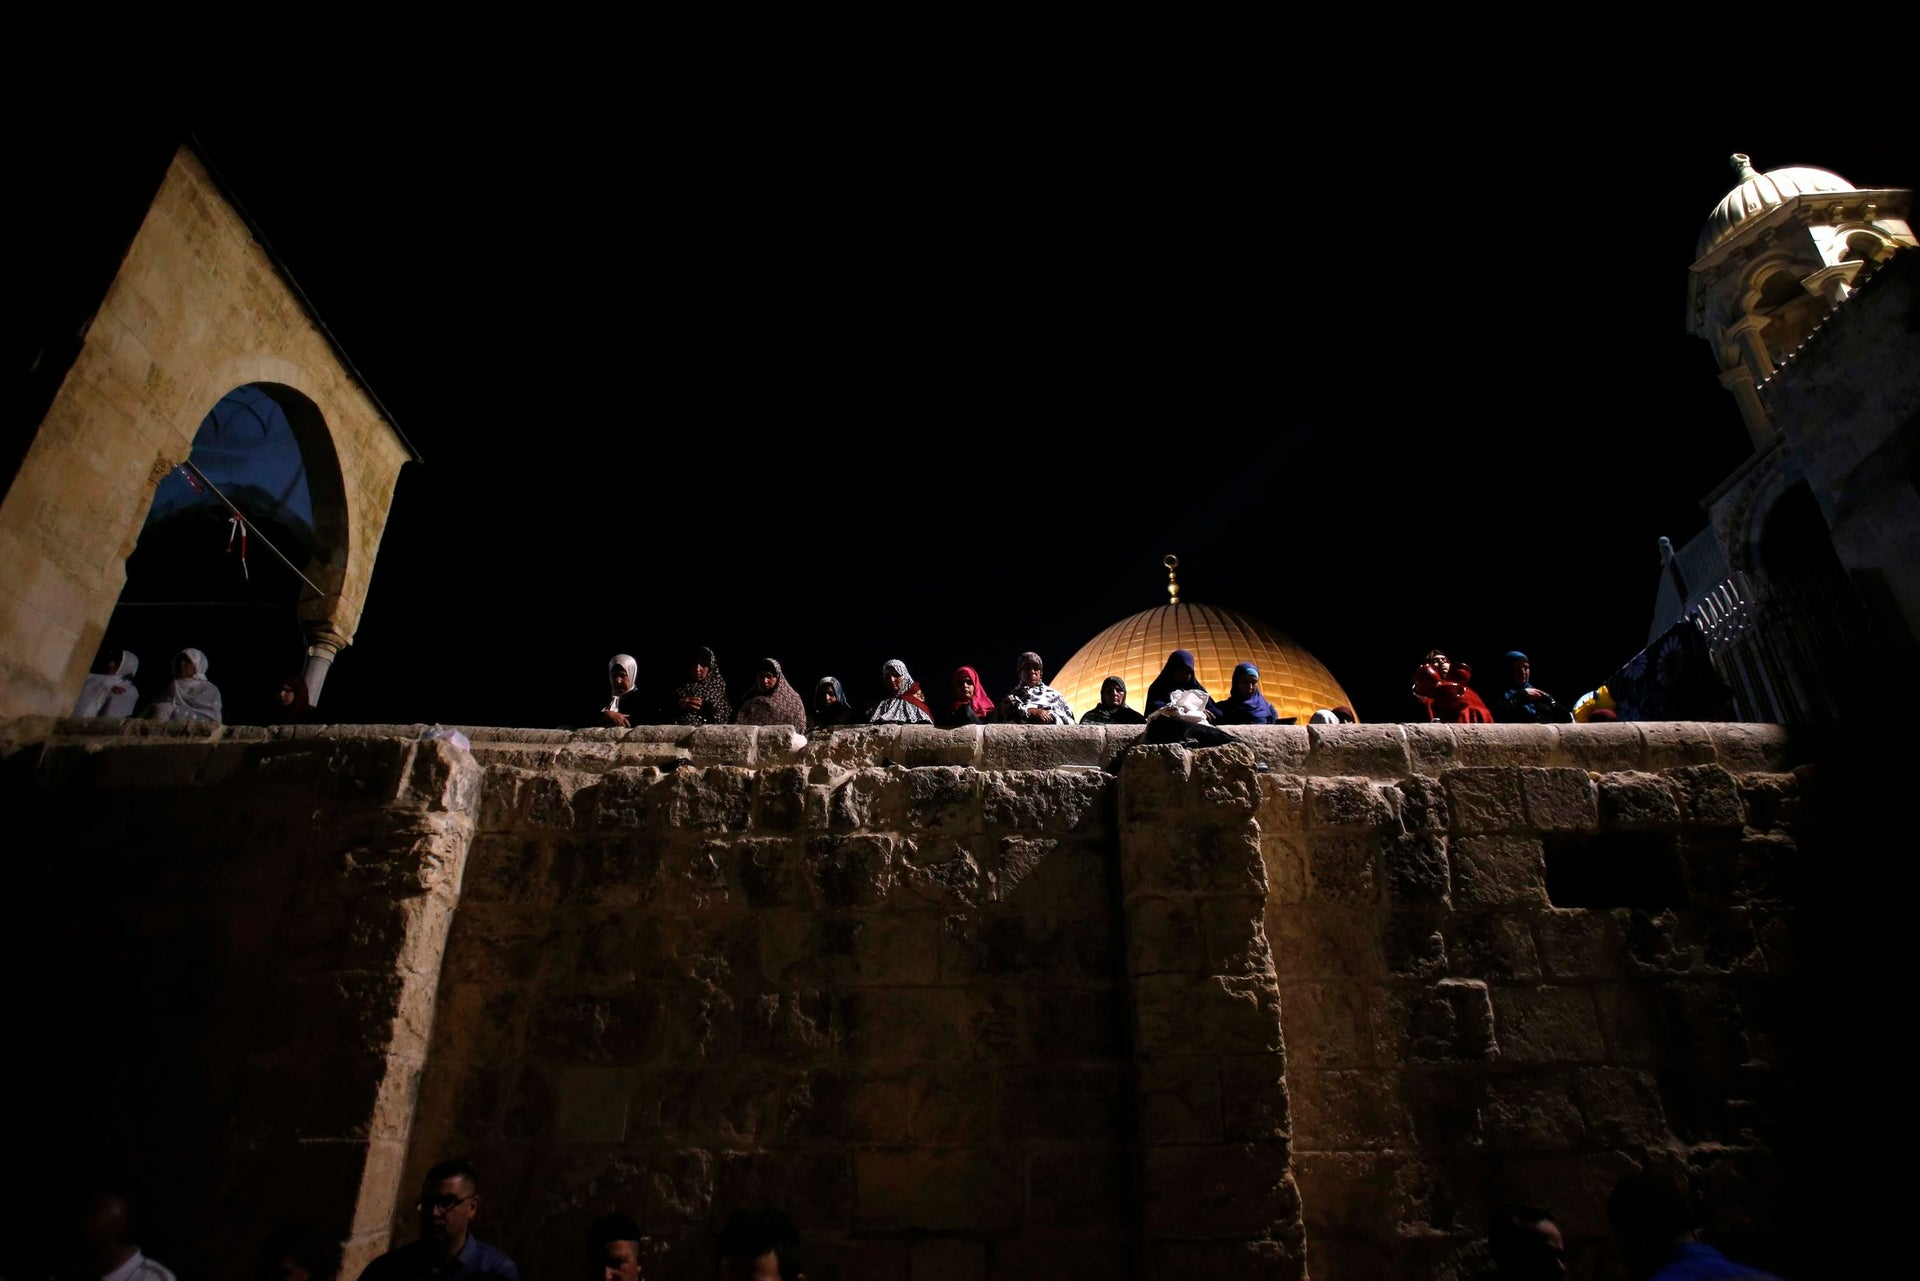 Muslim women pray in front of the Dome of the Rock, during Laylat al-Qadr in Jerusalem's Old City June 21, 2017.